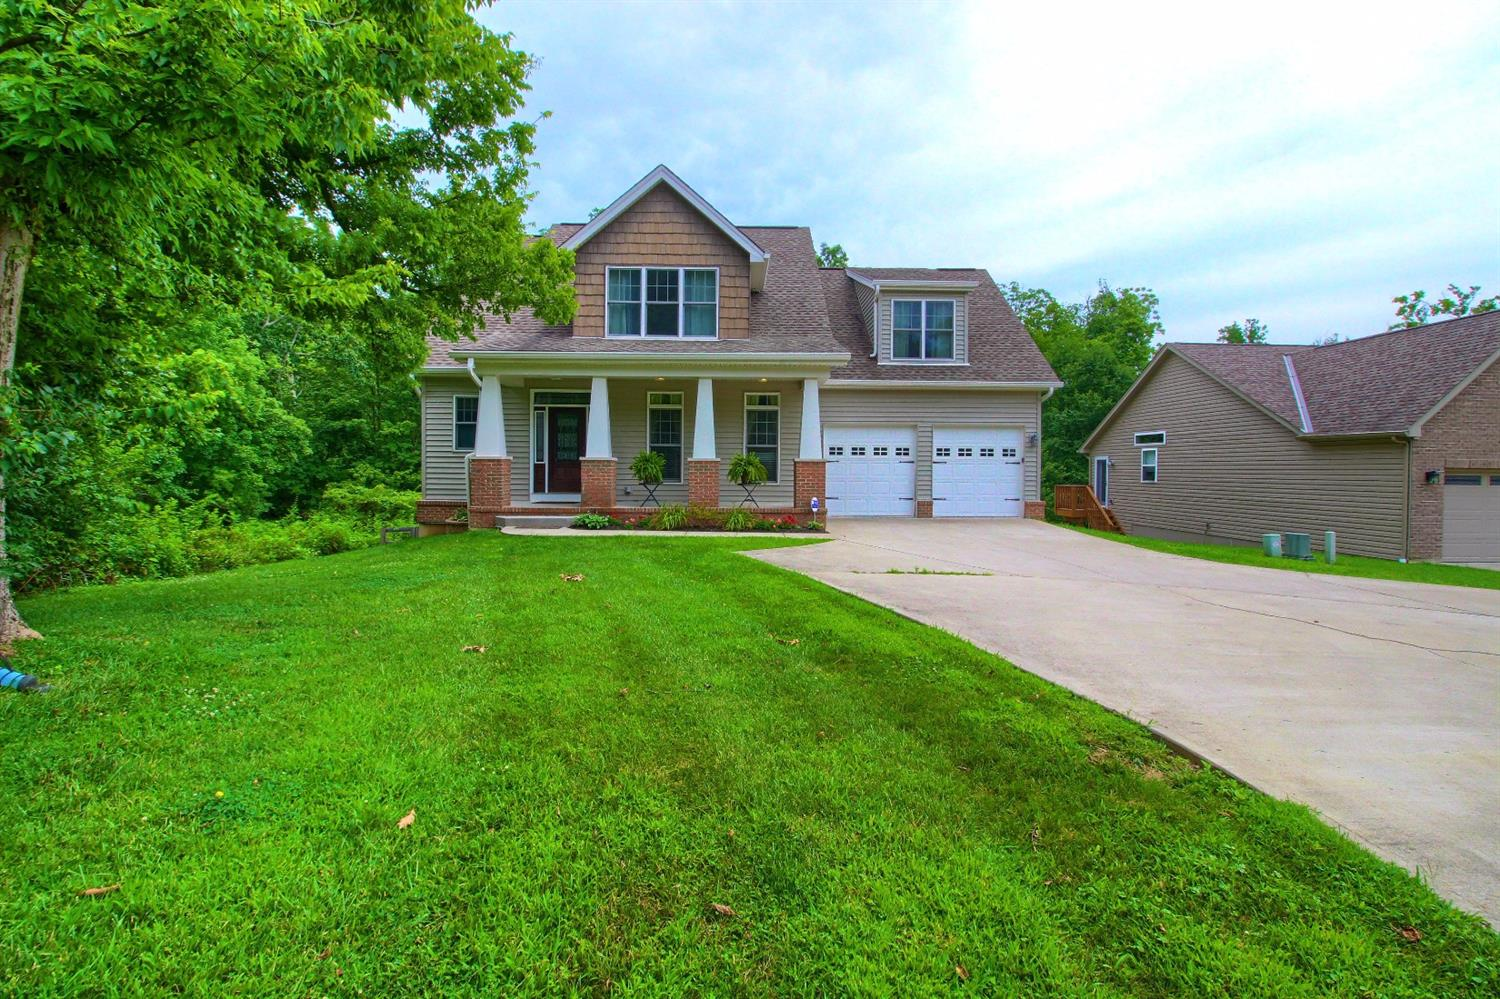 6409 Pepper Ln Mt. Washington, OH